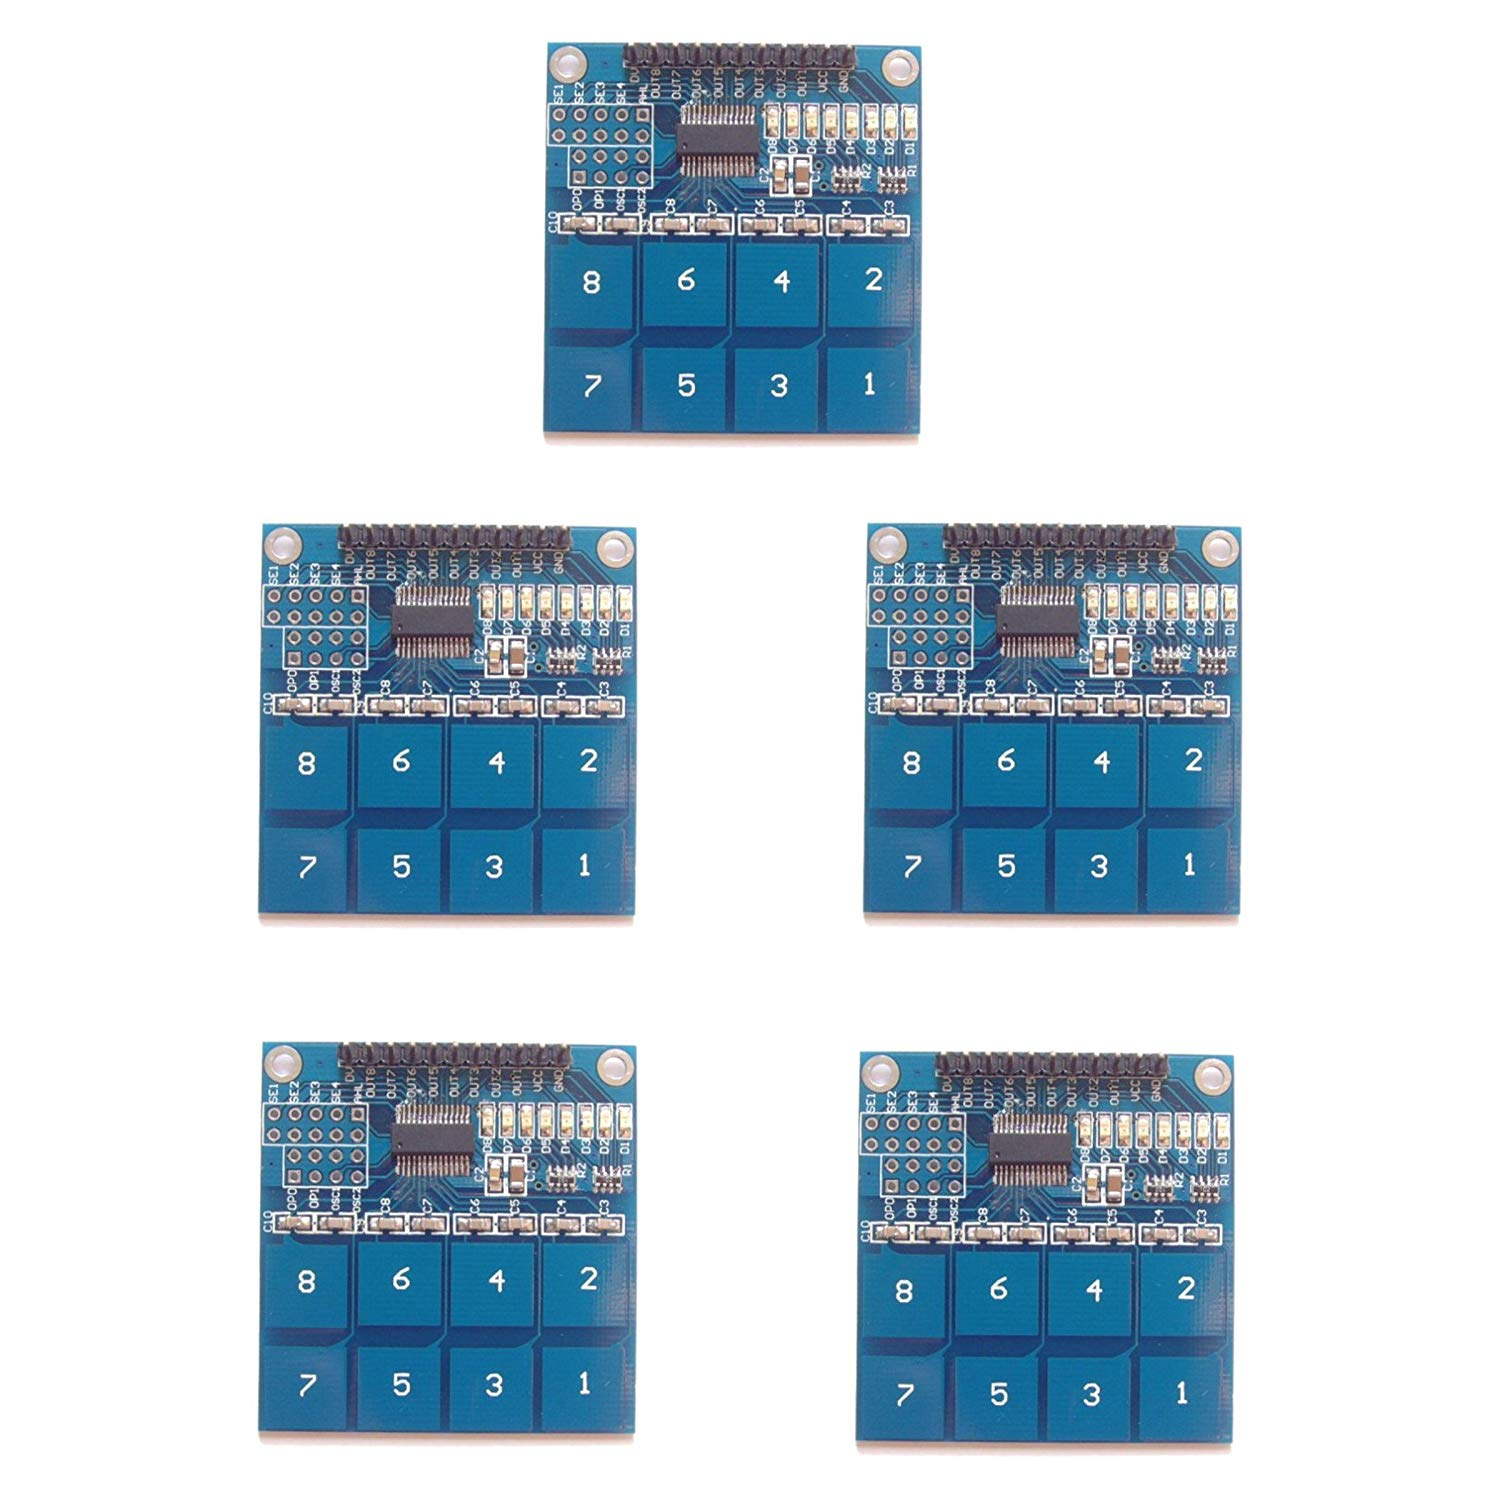 Optimus Electric 5pcs TTP226 Capacitive Touchpad Sensor Key Switch Module Board with 8 Channels and Indicator LEDs from